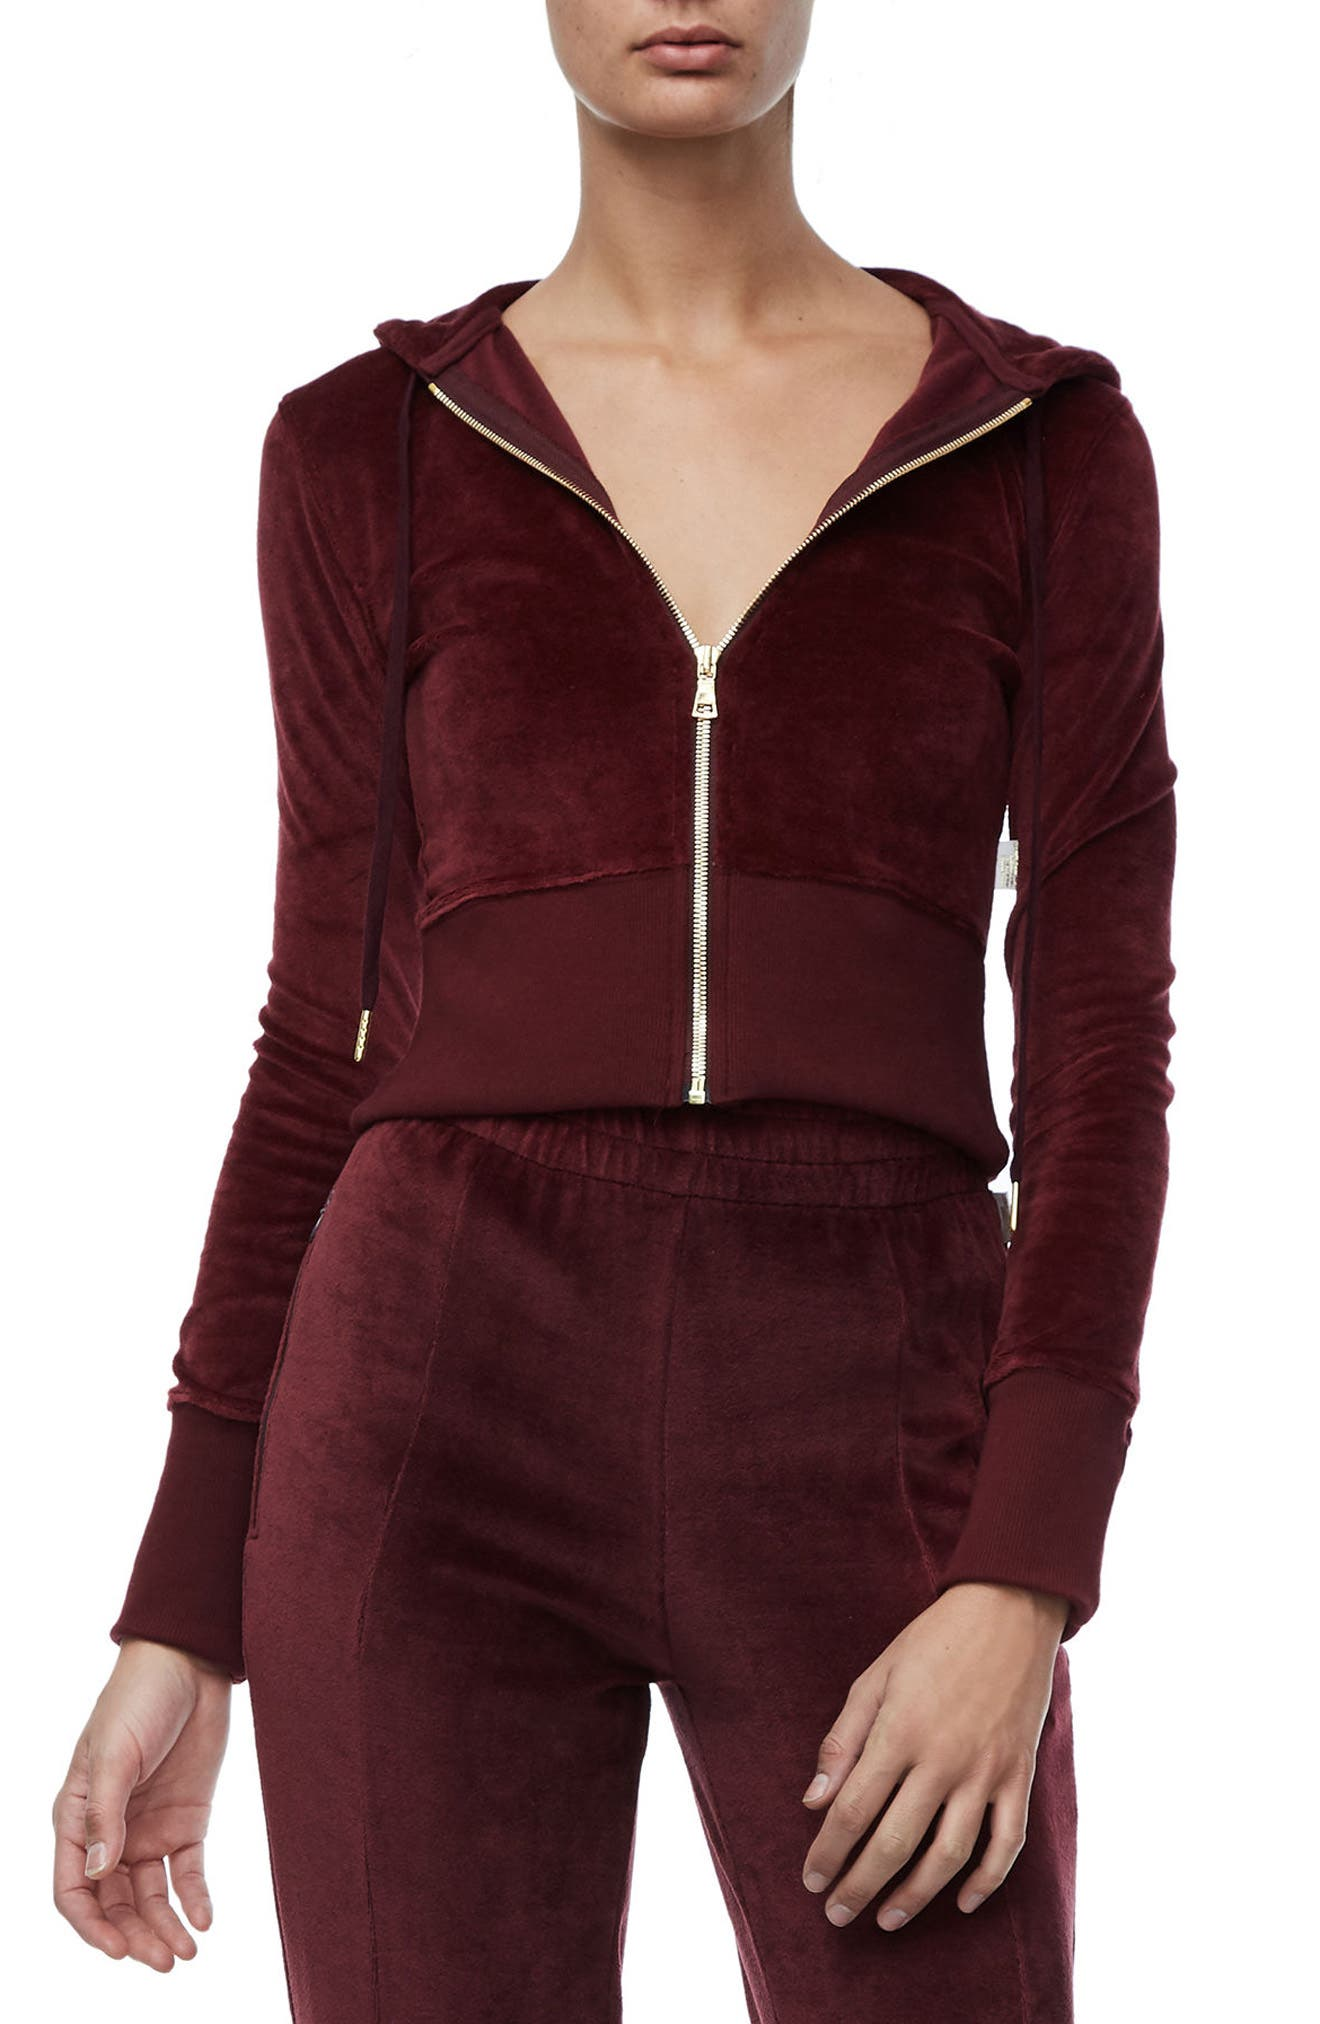 Alternate Image 1 Selected - Good American Crop Velour Hoodie (Regular & Plus Size)